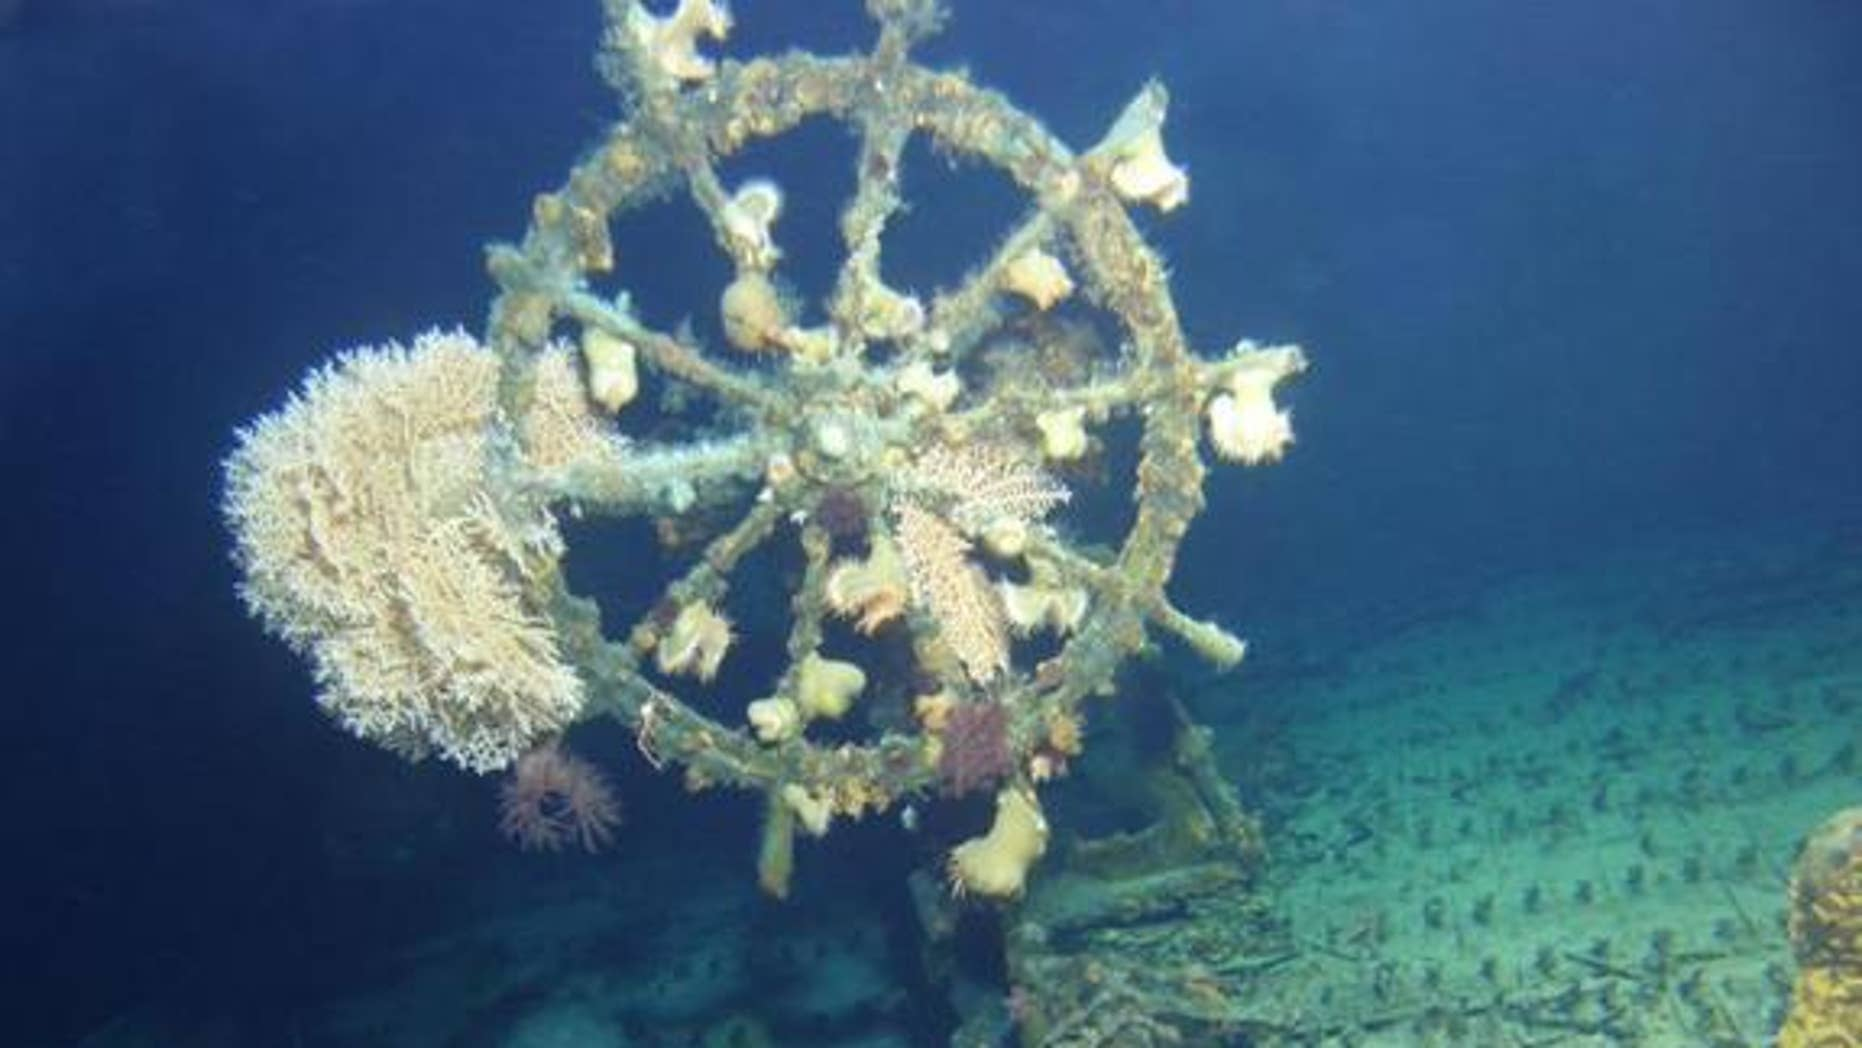 The U.S.S. Kailua, a sunken cable repair ship that was torpedoed in 1946, was recently rediscovered off the shores of Oahu, Hawaii. The ship's wheel, shown here, was still in its original location.